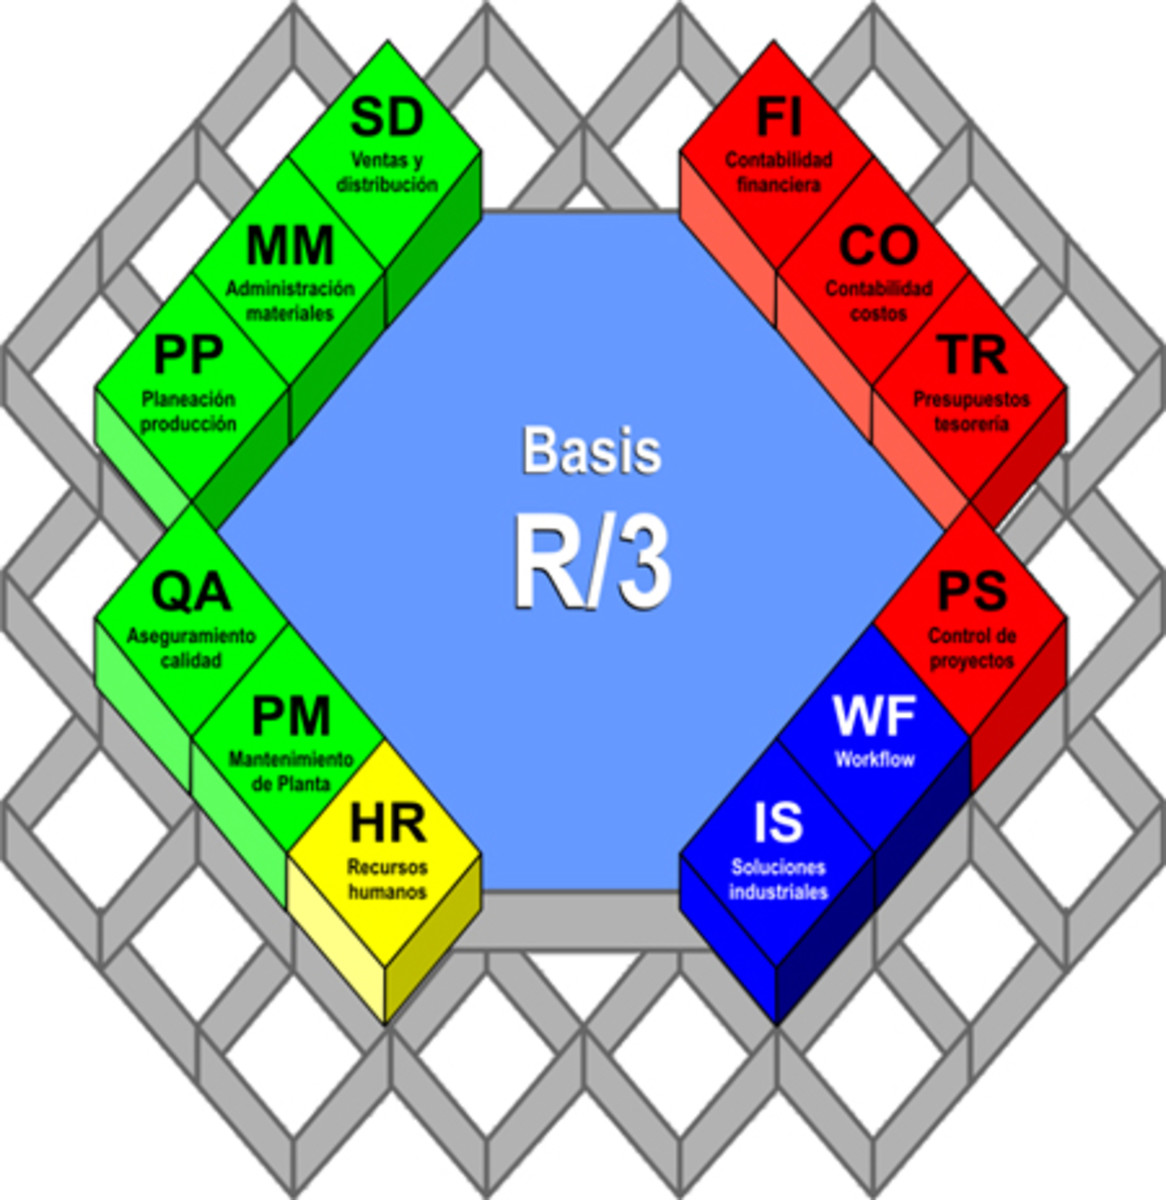 A diagram of the SAP ERP modules (previously known as R/3).